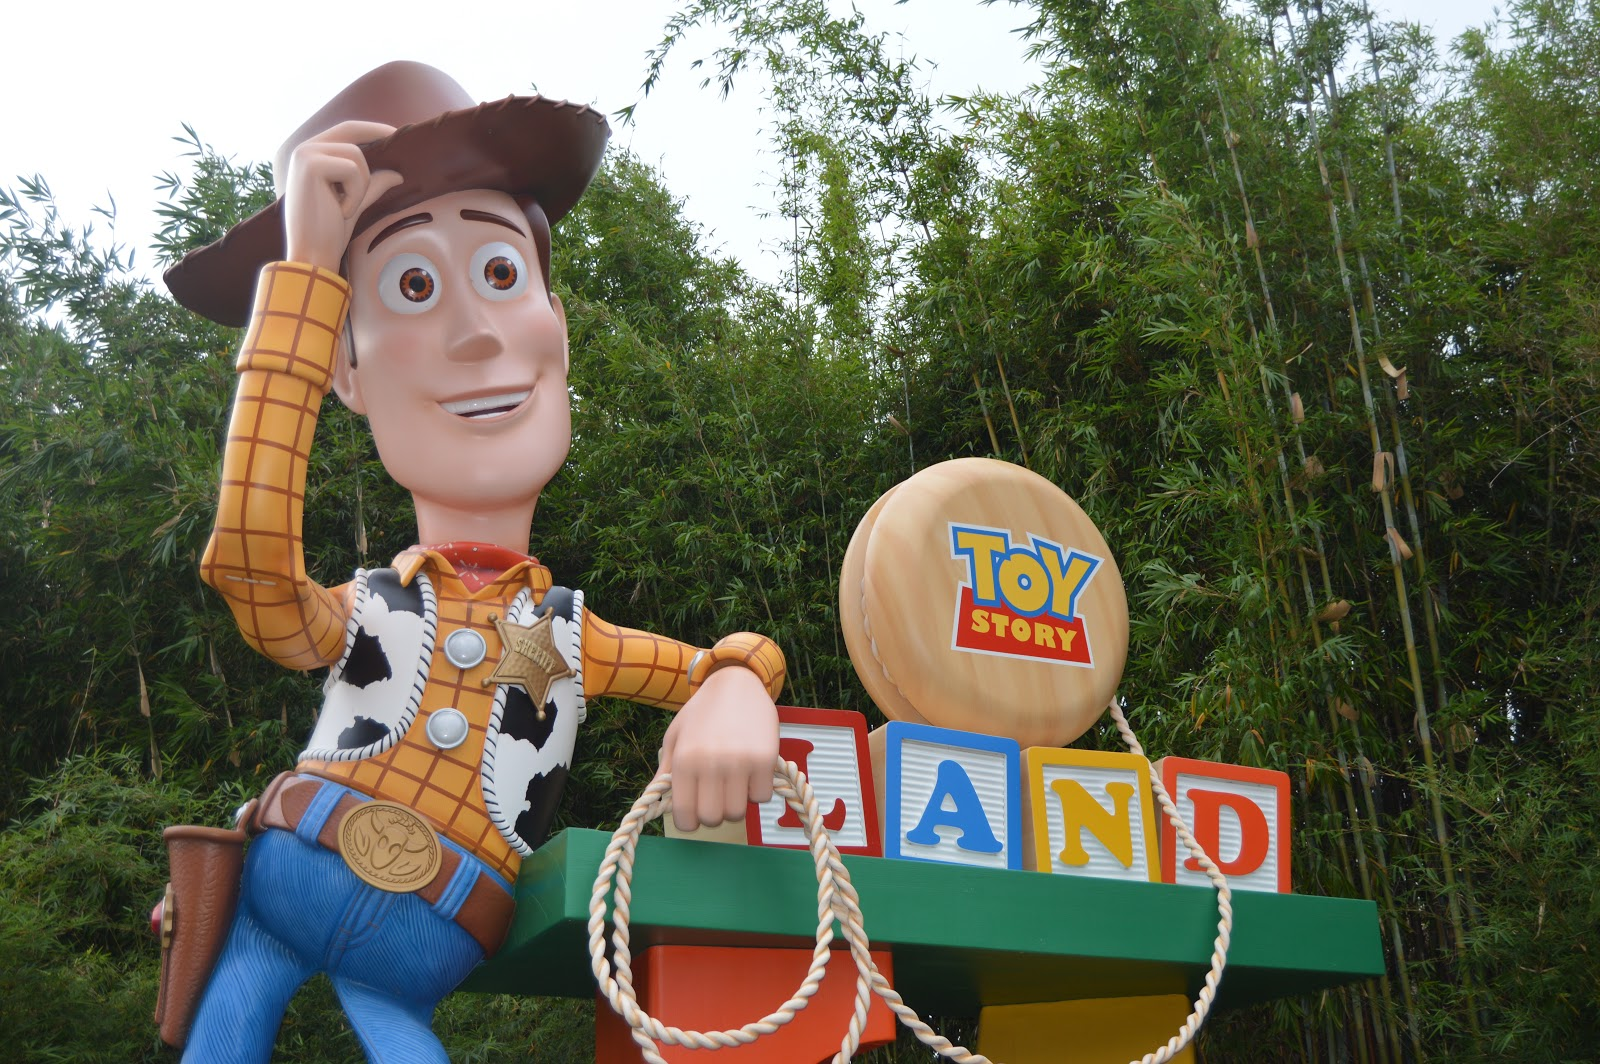 Entrance to Toy Story Land, Walt Disney World